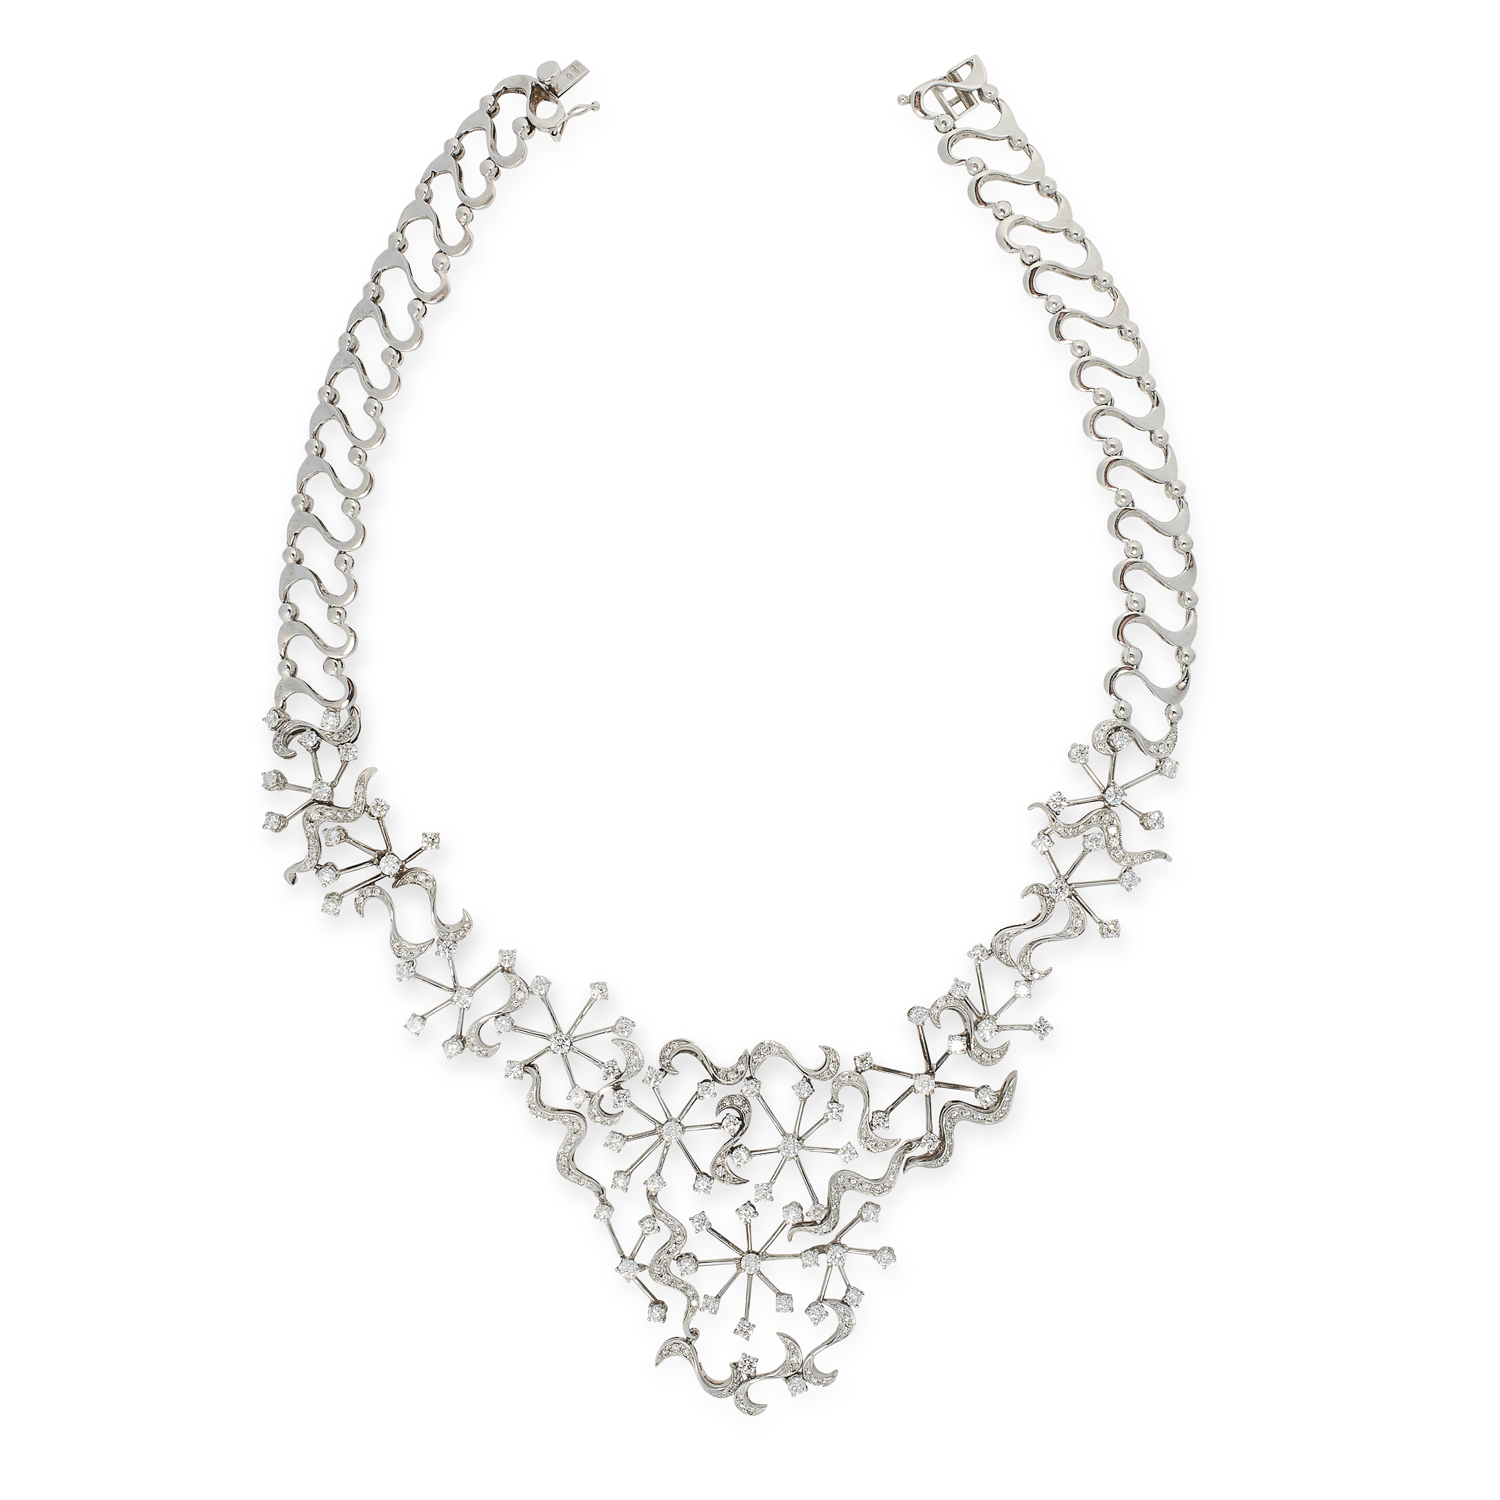 A DIAMOND COLLAR NECKLACE in 18ct white gold, in scrolling open framework design set with round